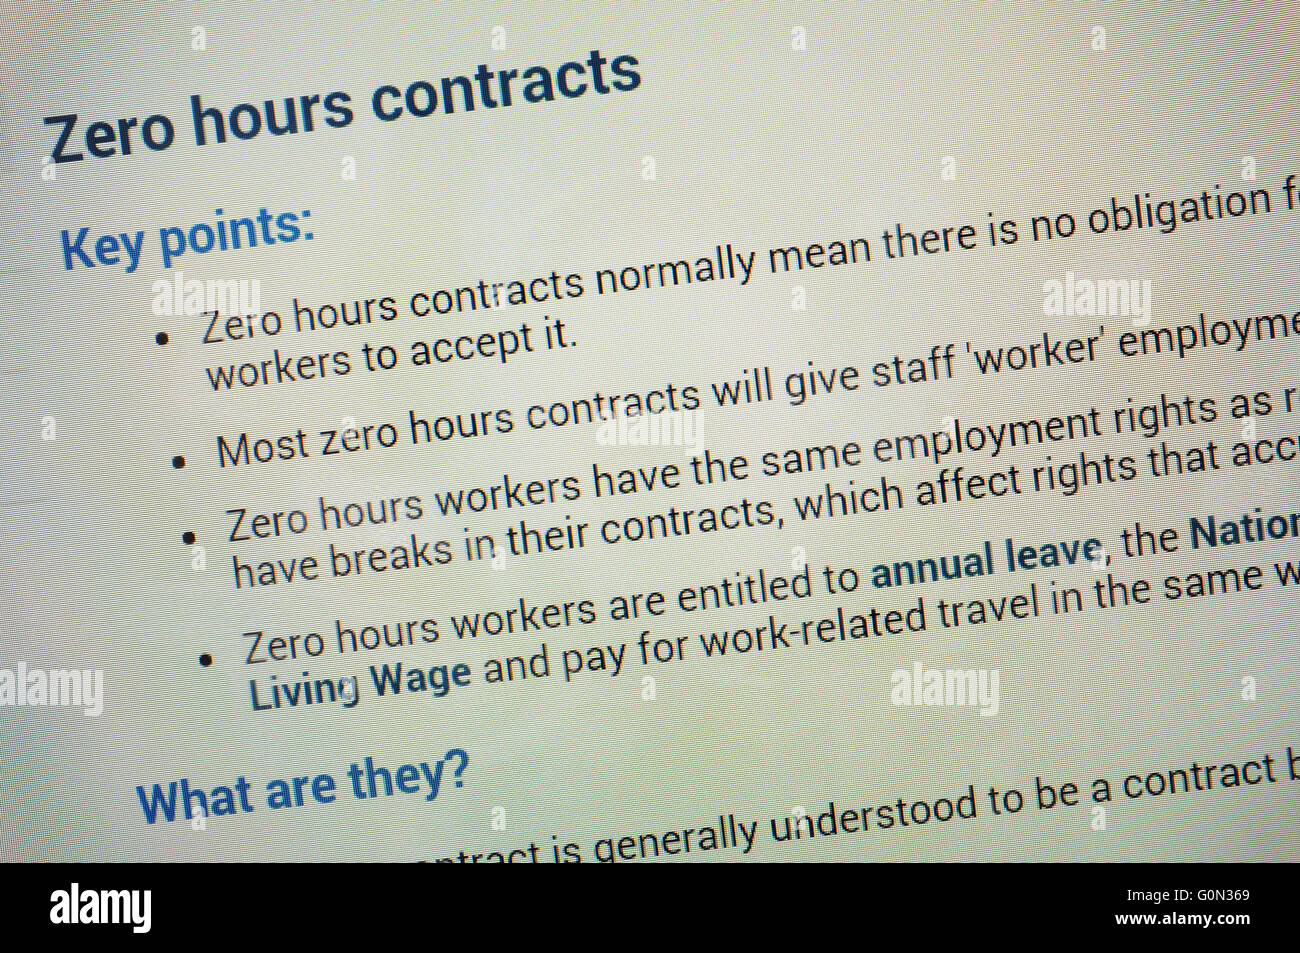 Information about zero hours contracts displayed on the screen of a tablet. - Stock Image